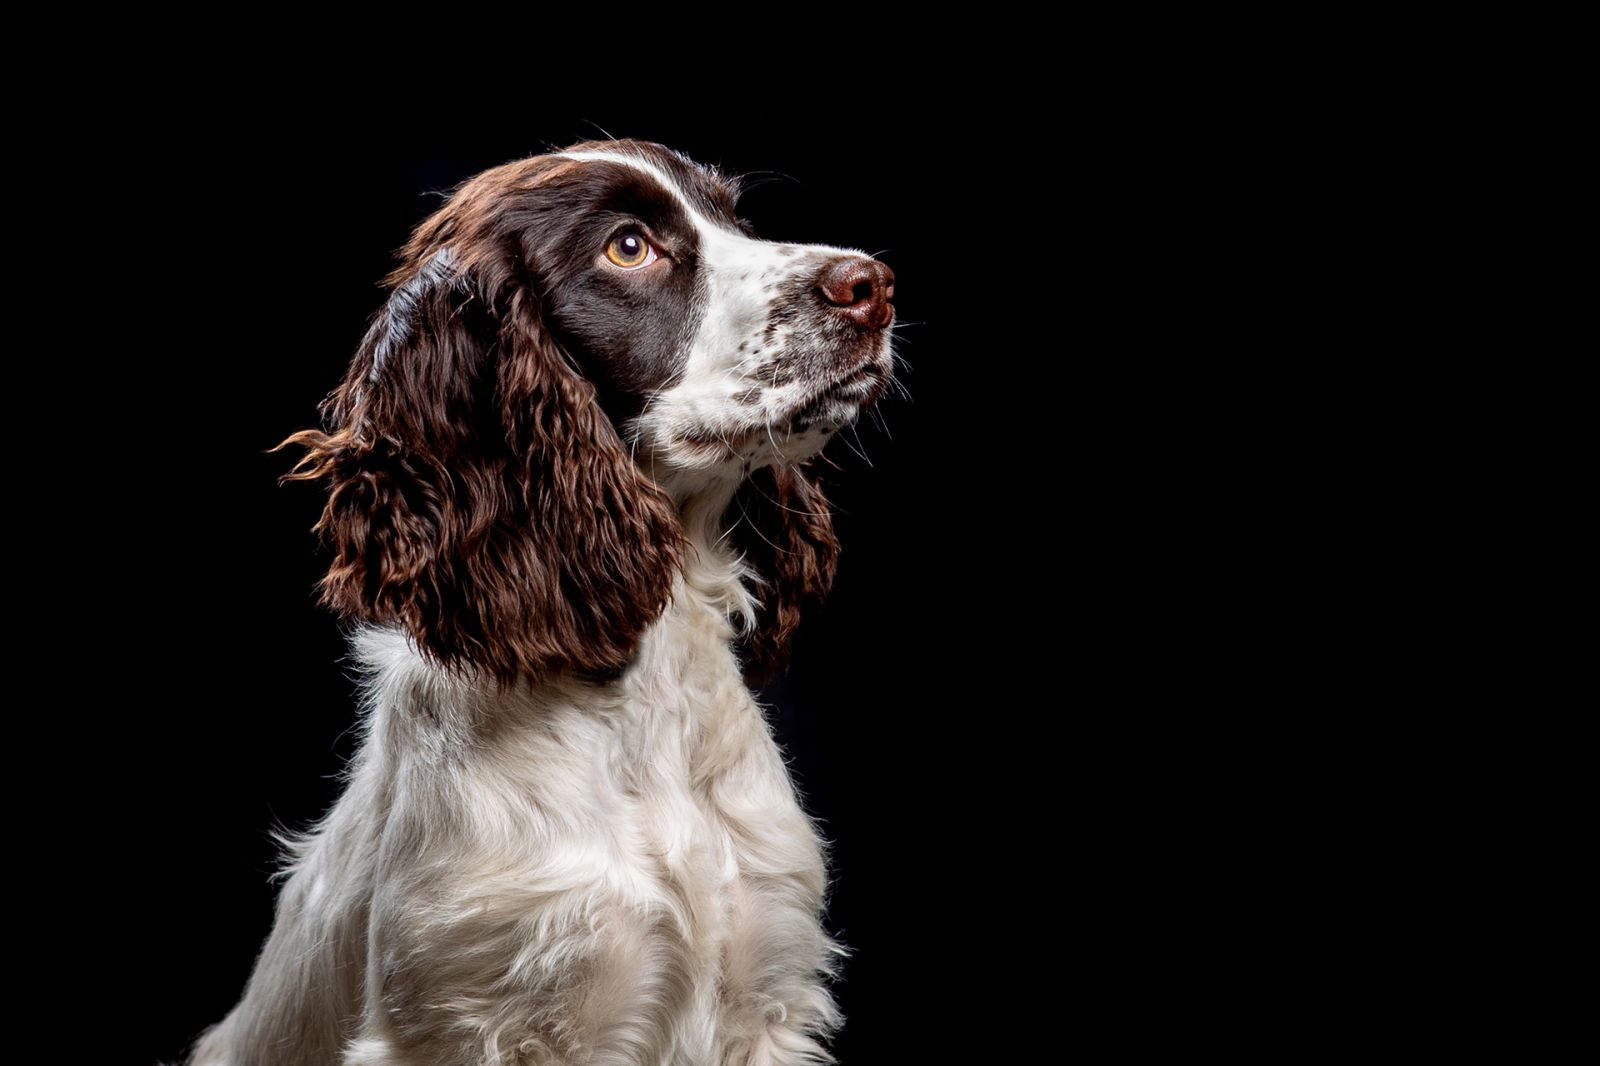 Spaniel Dog Studio Portrait Sitting in profile with black background